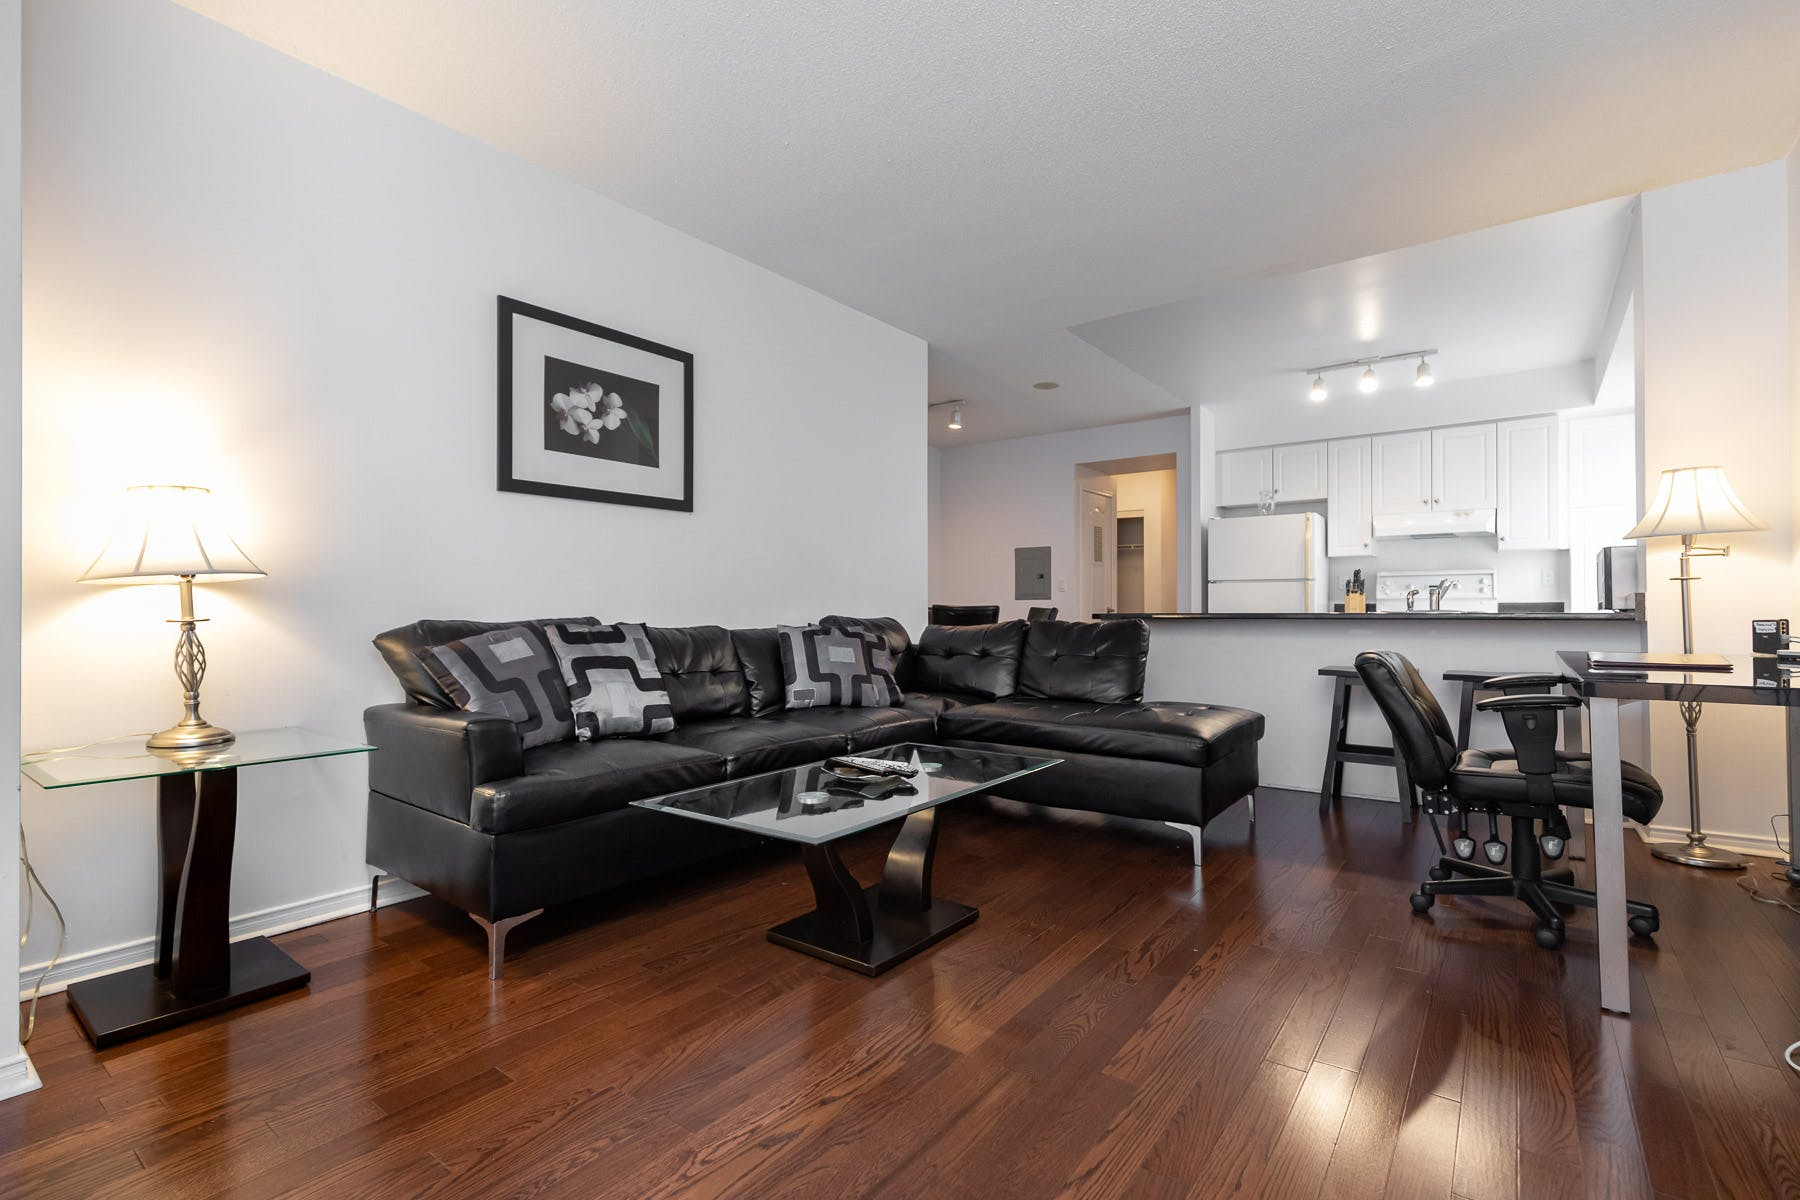 3 Residents | Entertainment District | Luxury Apt. Overlooking the City w/ Theather + Pool